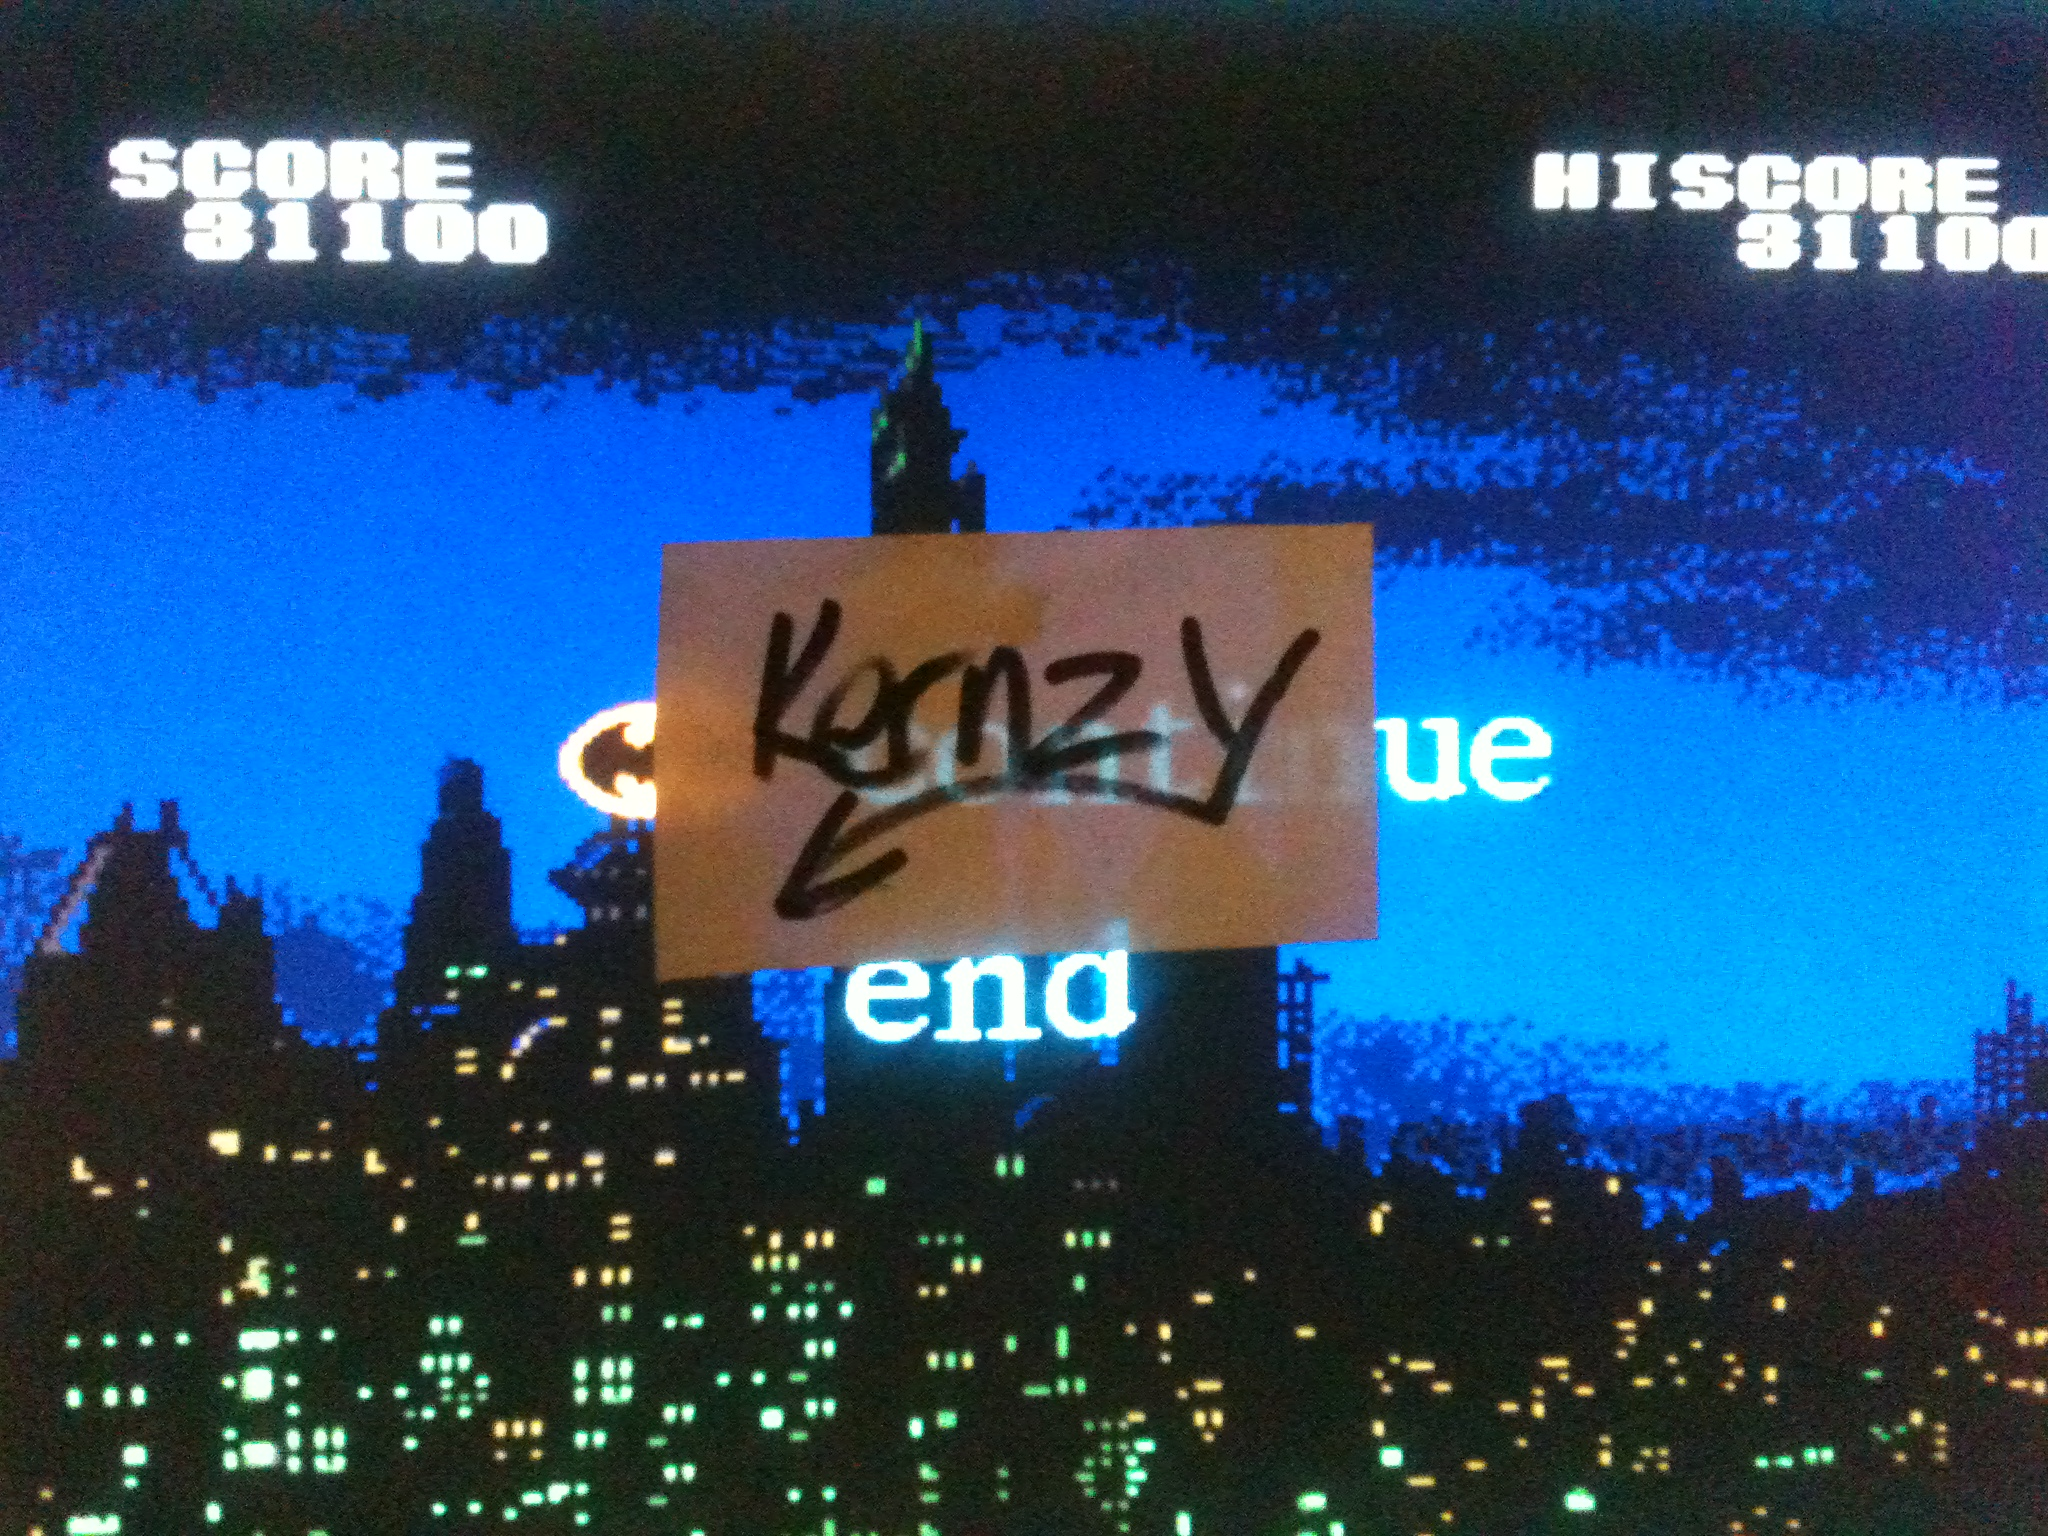 kernzy: Batman (TurboGrafx-16/PC Engine Emulated) 31,100 points on 2014-11-25 07:33:13